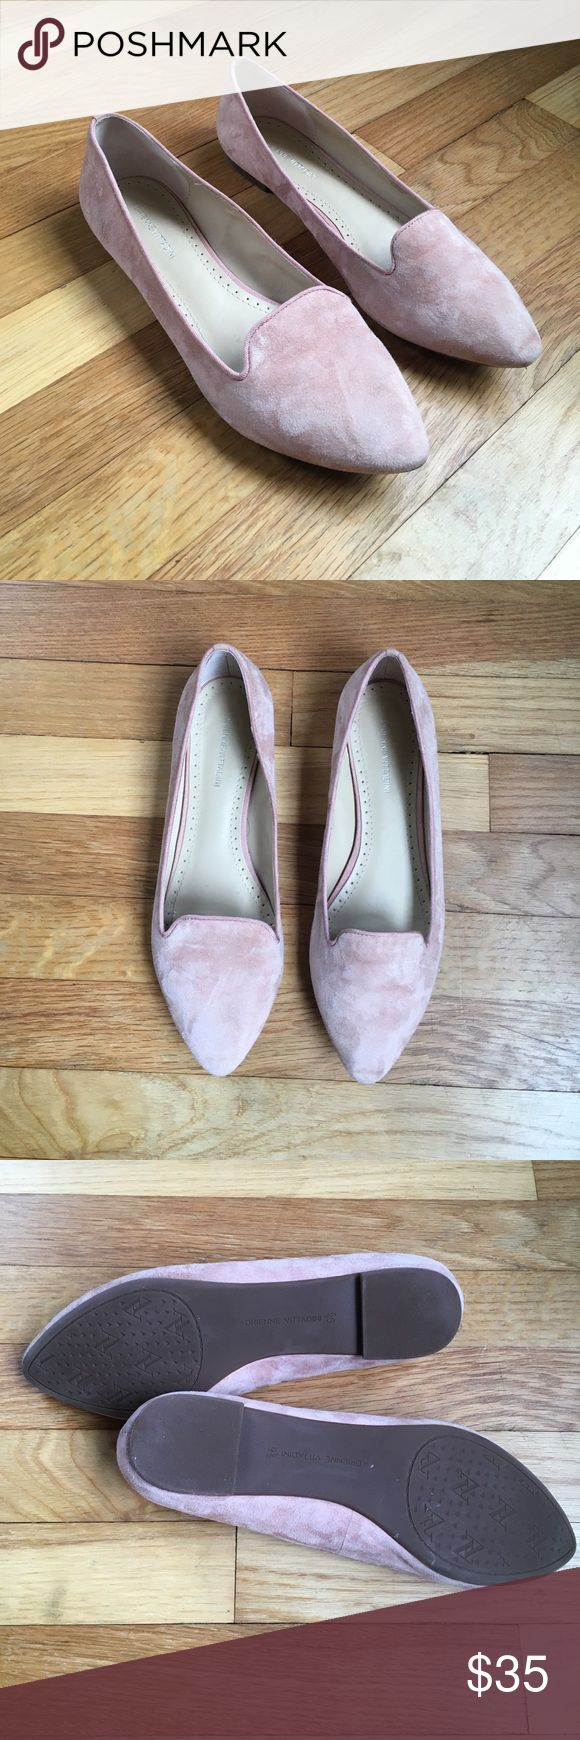 Adrienne Vittandini Suede Benson Flats Adrienne Vittandini Suede Benson Flats. Used condition. Pointed toe. I would describe color as dusty rose. Adrienne Vittadini Shoes Flats & Loafers